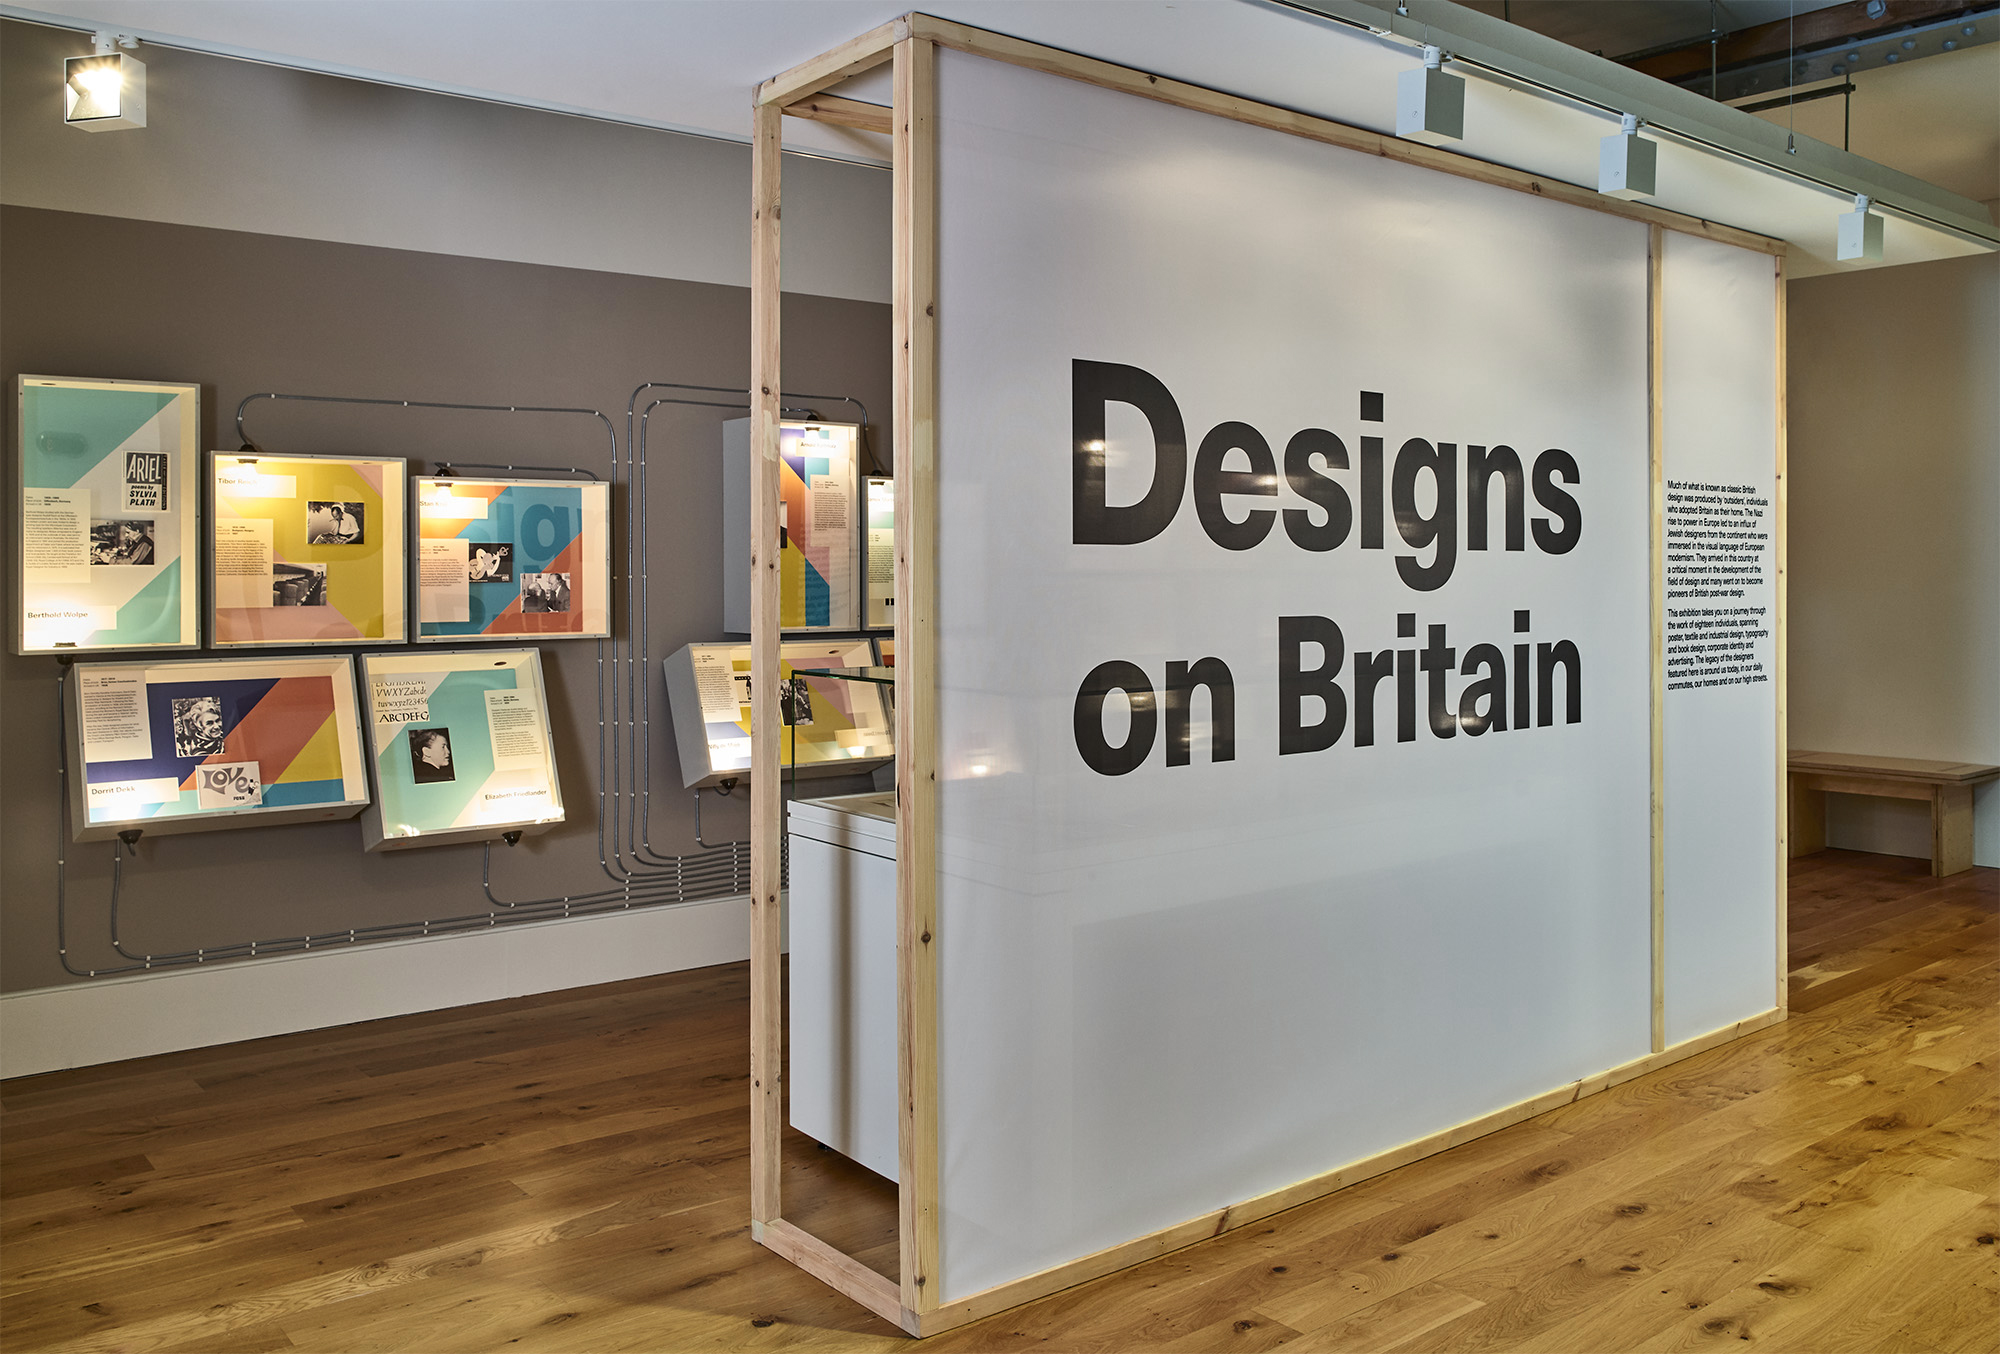 Designs on Britain   Exhibition design, Jewish Museum, 2017   In the 20th Century, pioneering designers from continental Europe emigrated to Britain and brought with them a knowledge of European modernism. This exhibition explores their major contribution and influence on British design.  The design language is articulated into evocative displays of the mid-century and a rich colour palette. The interplay between colour and material allowed us to create an immersive studio atmosphere. Tactile and engaging activities allow visitors to understand the objects and stories making participation an integrated part of the exhibition experience.  Project completed with Plaid London